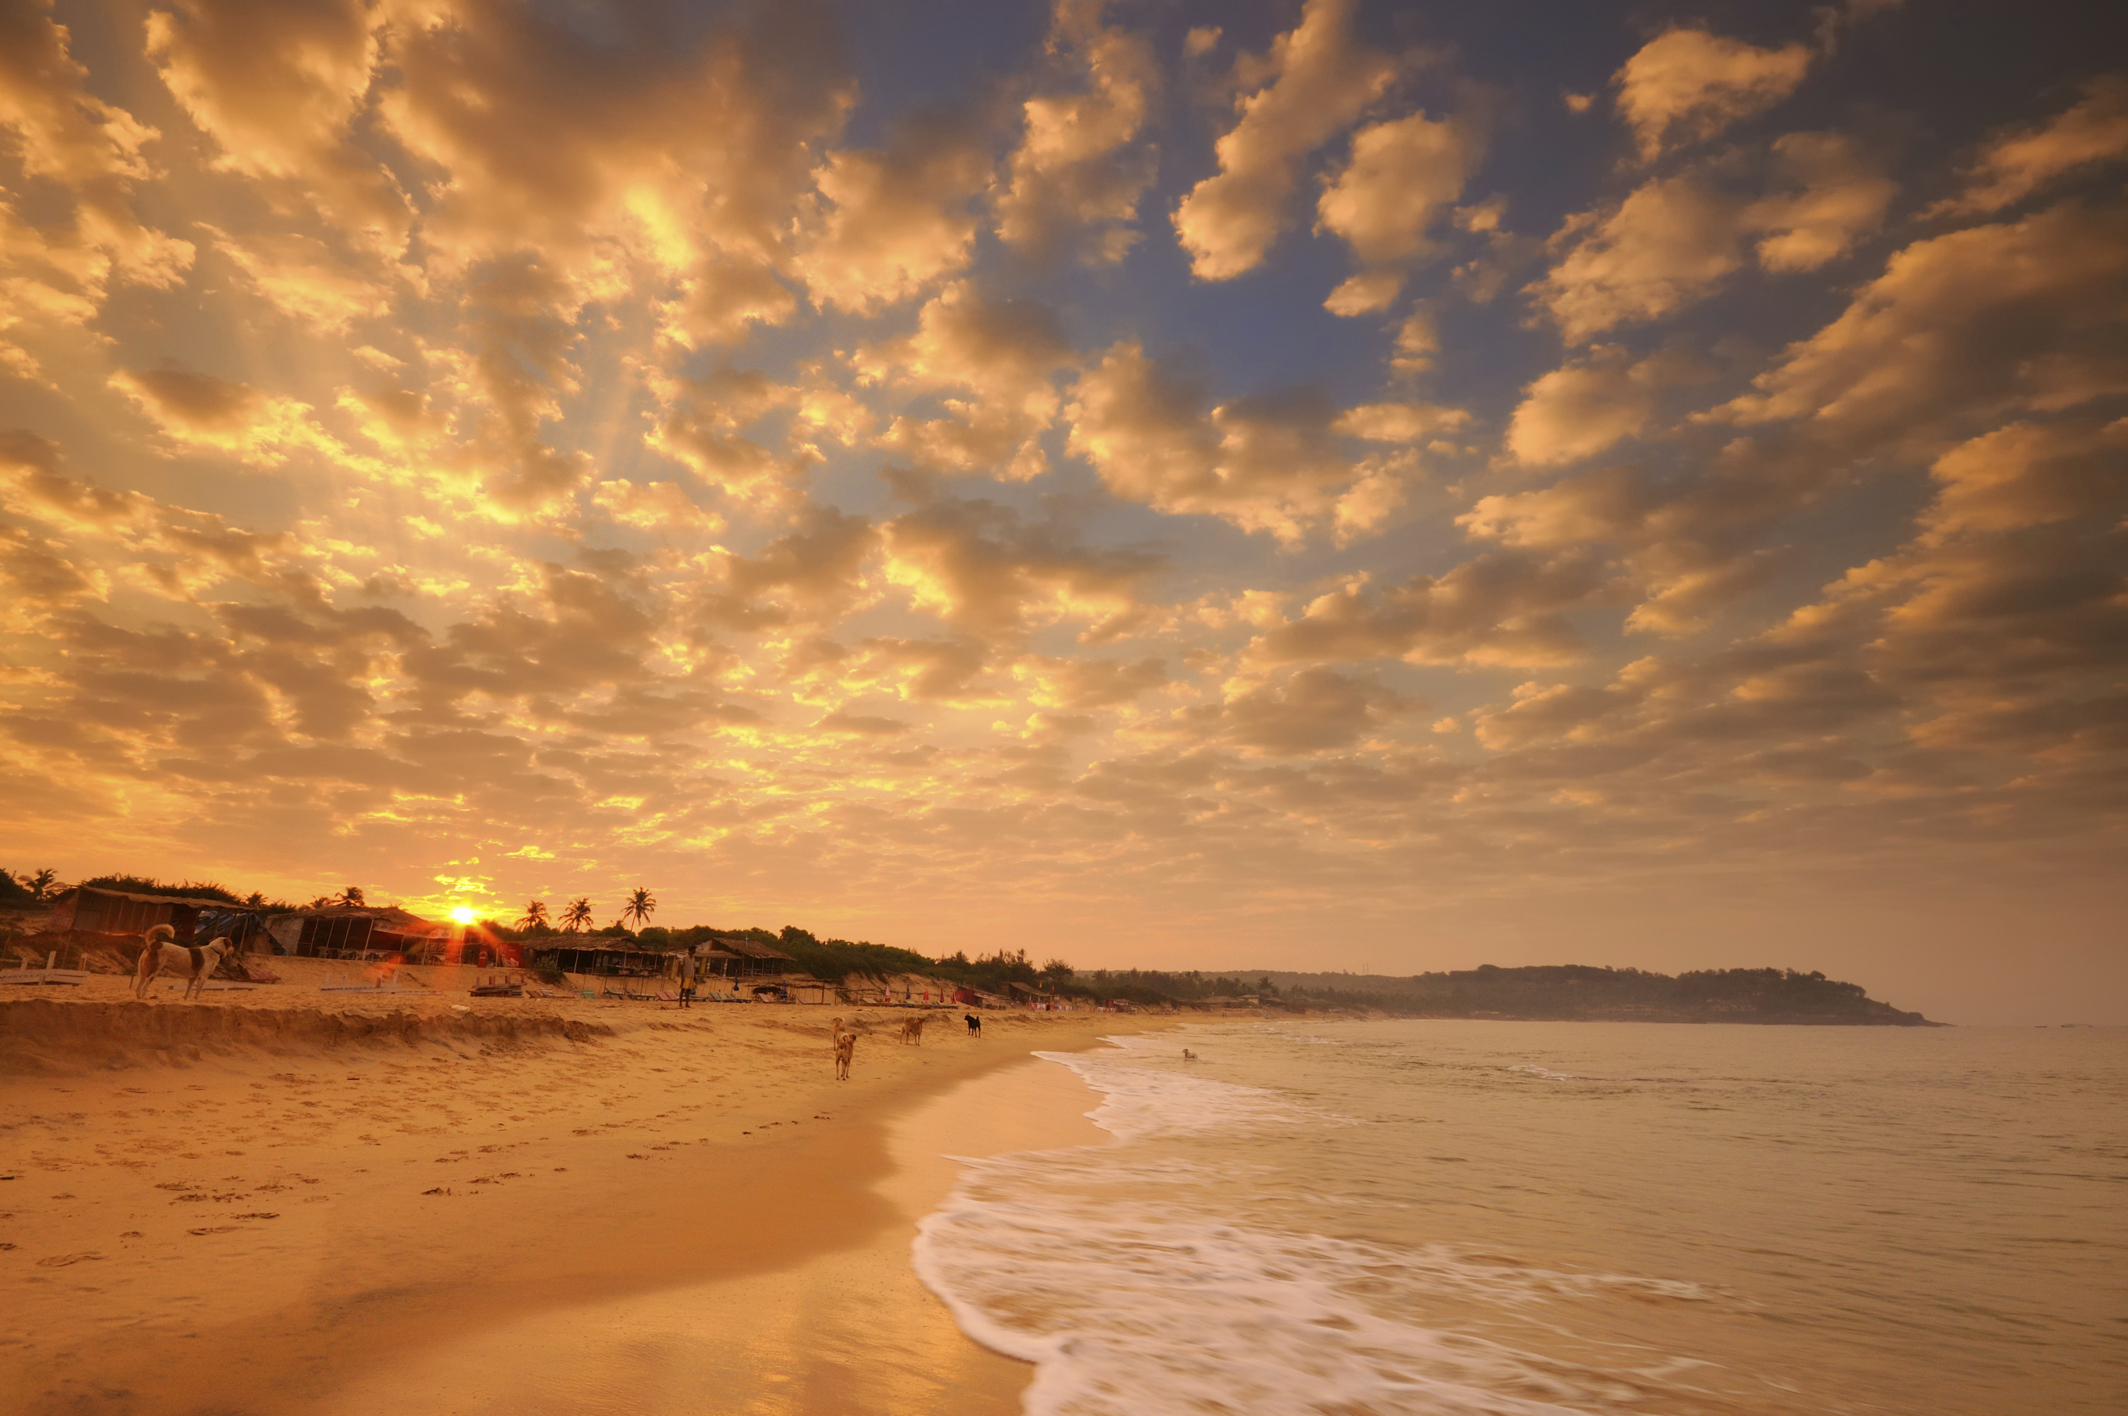 Goa_sunset_Getty_Images.jpg?1548418050